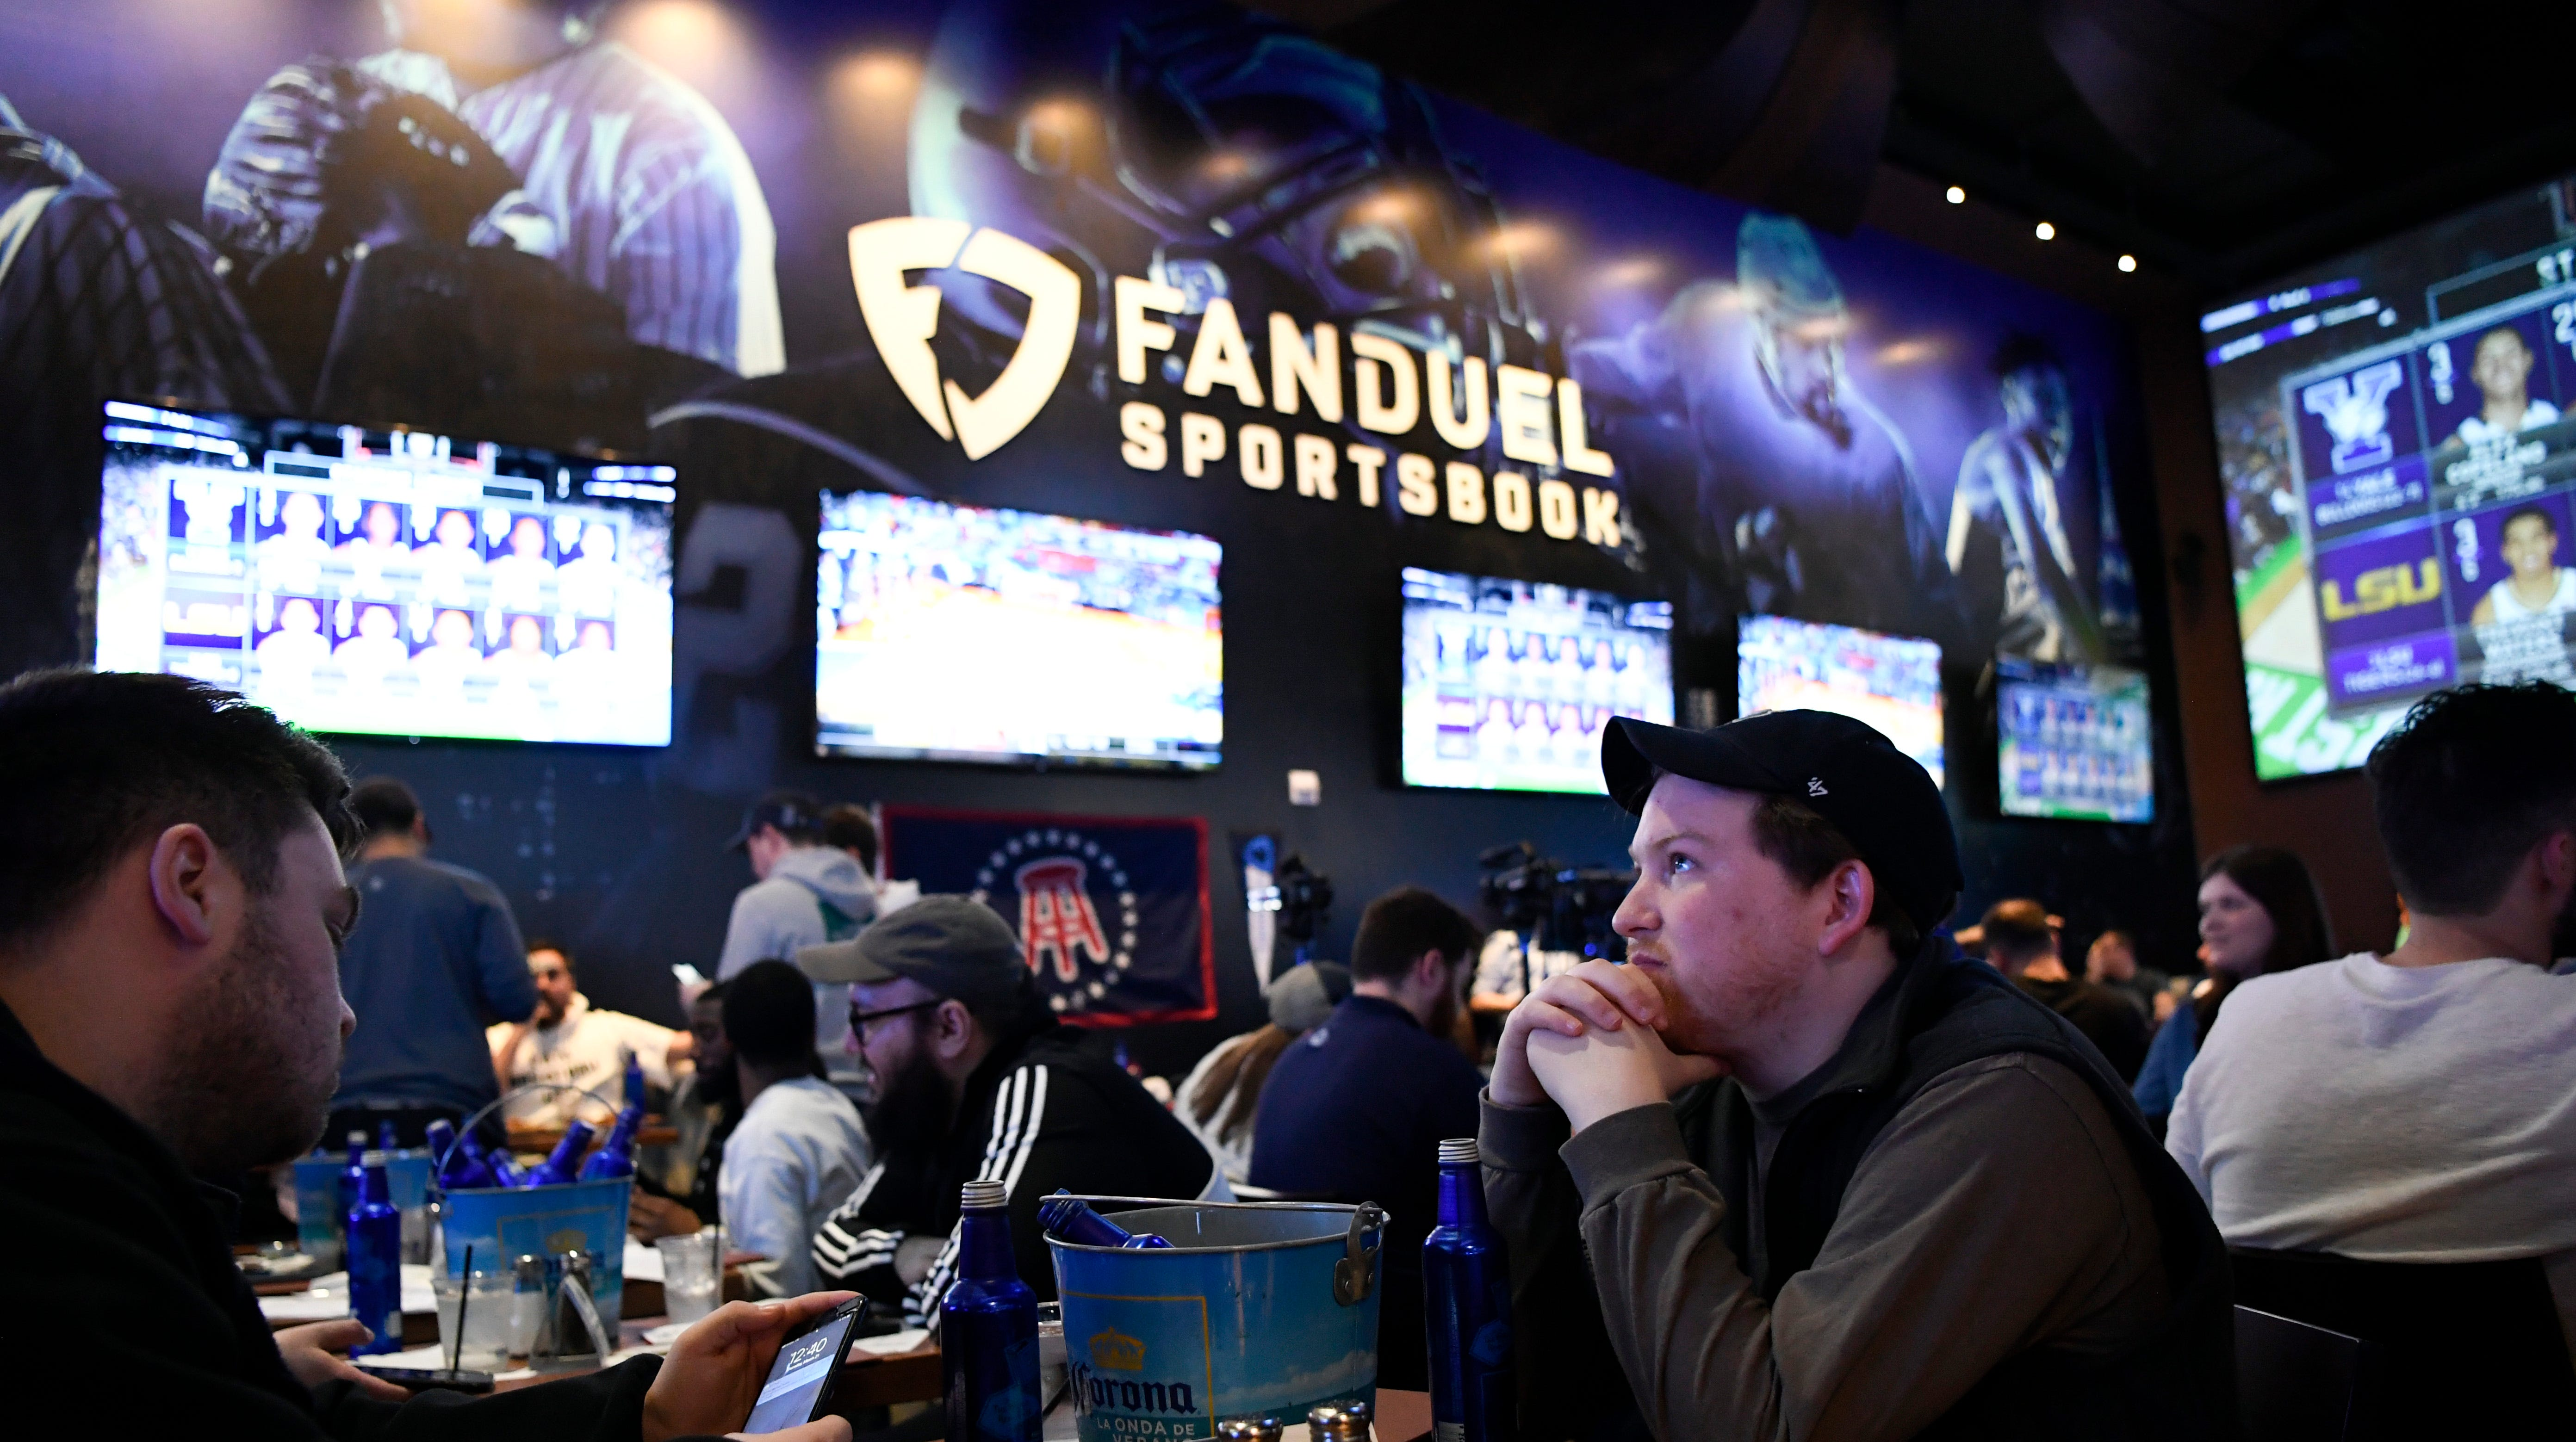 In the Meadowlands, a big sports venue meets the small screen